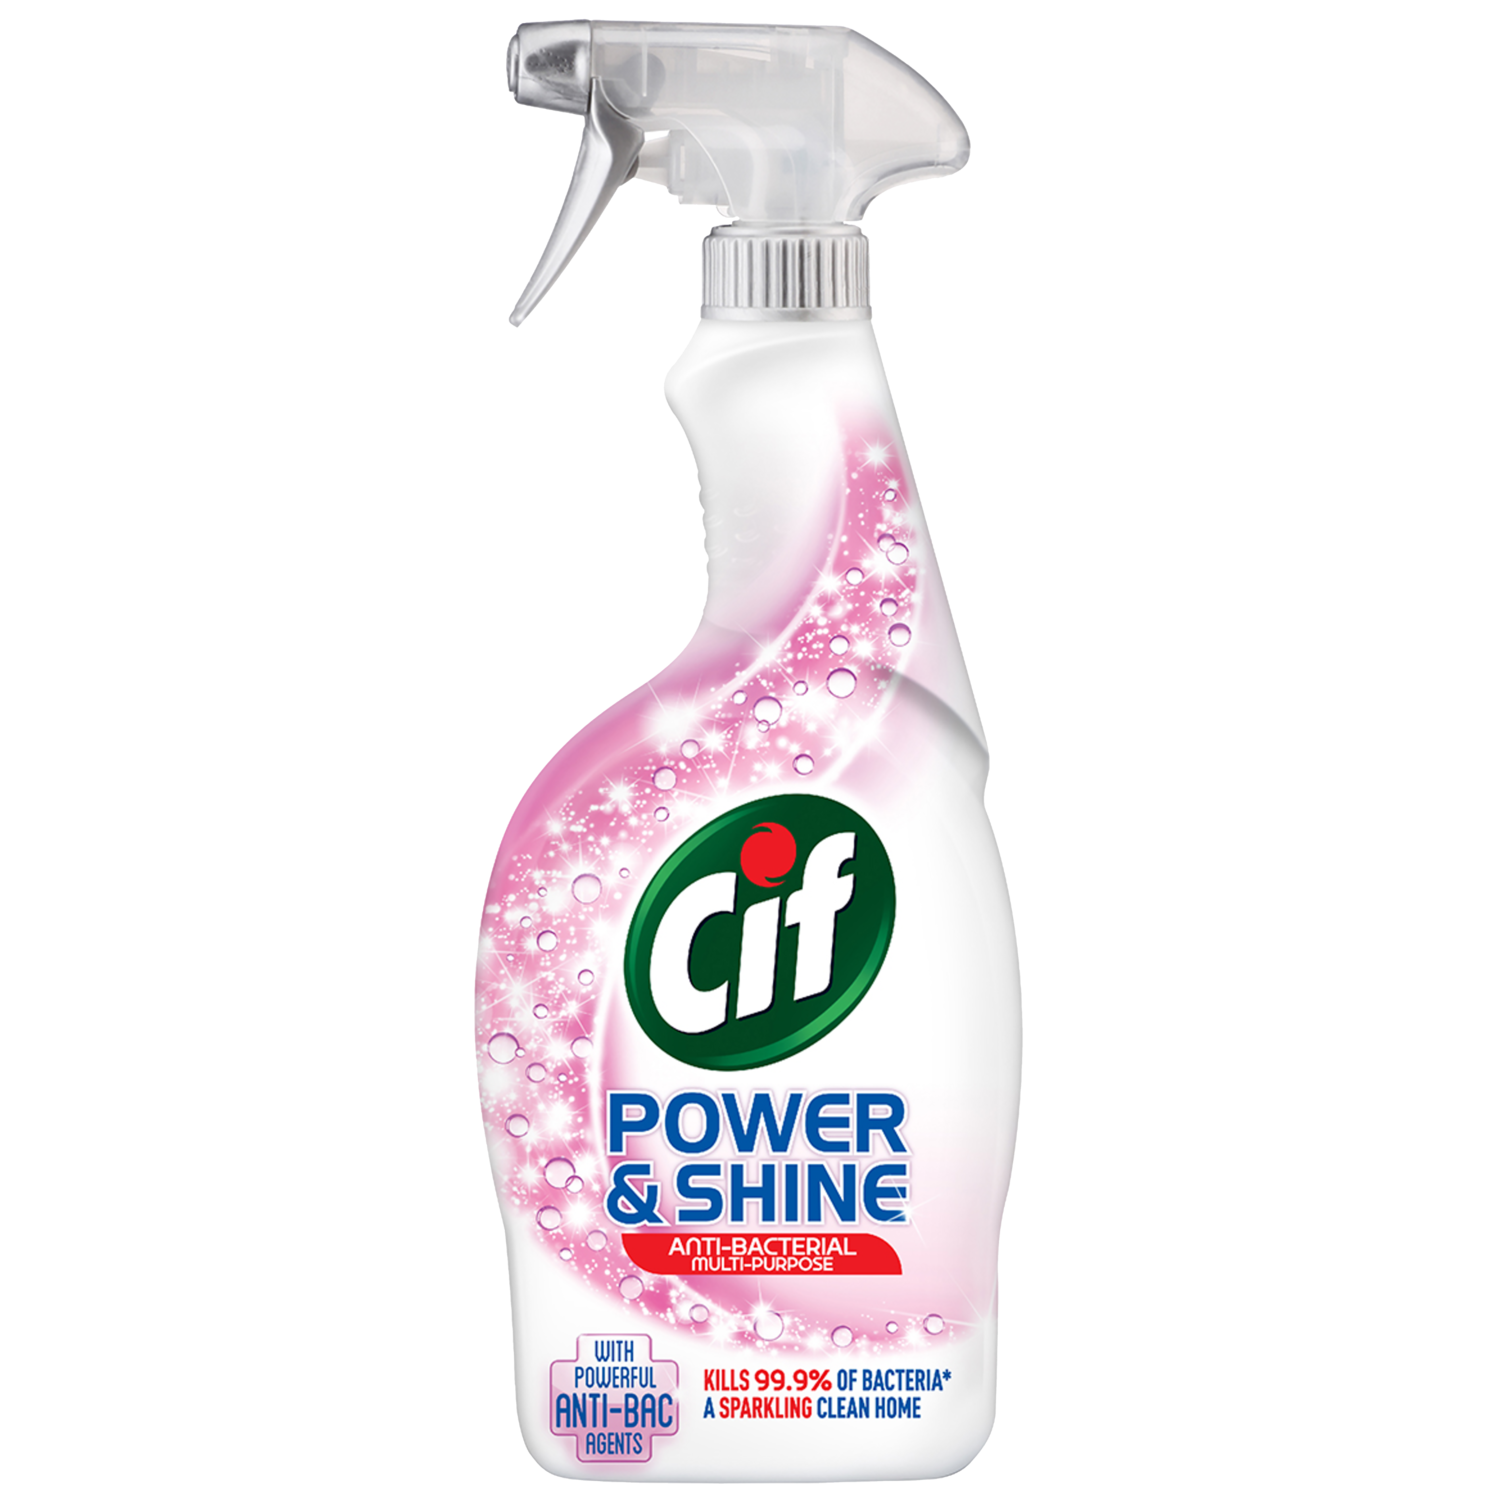 cif_power_shine_anti_bacterial_700ml_fo_8712561601_1_-1566578-png.png